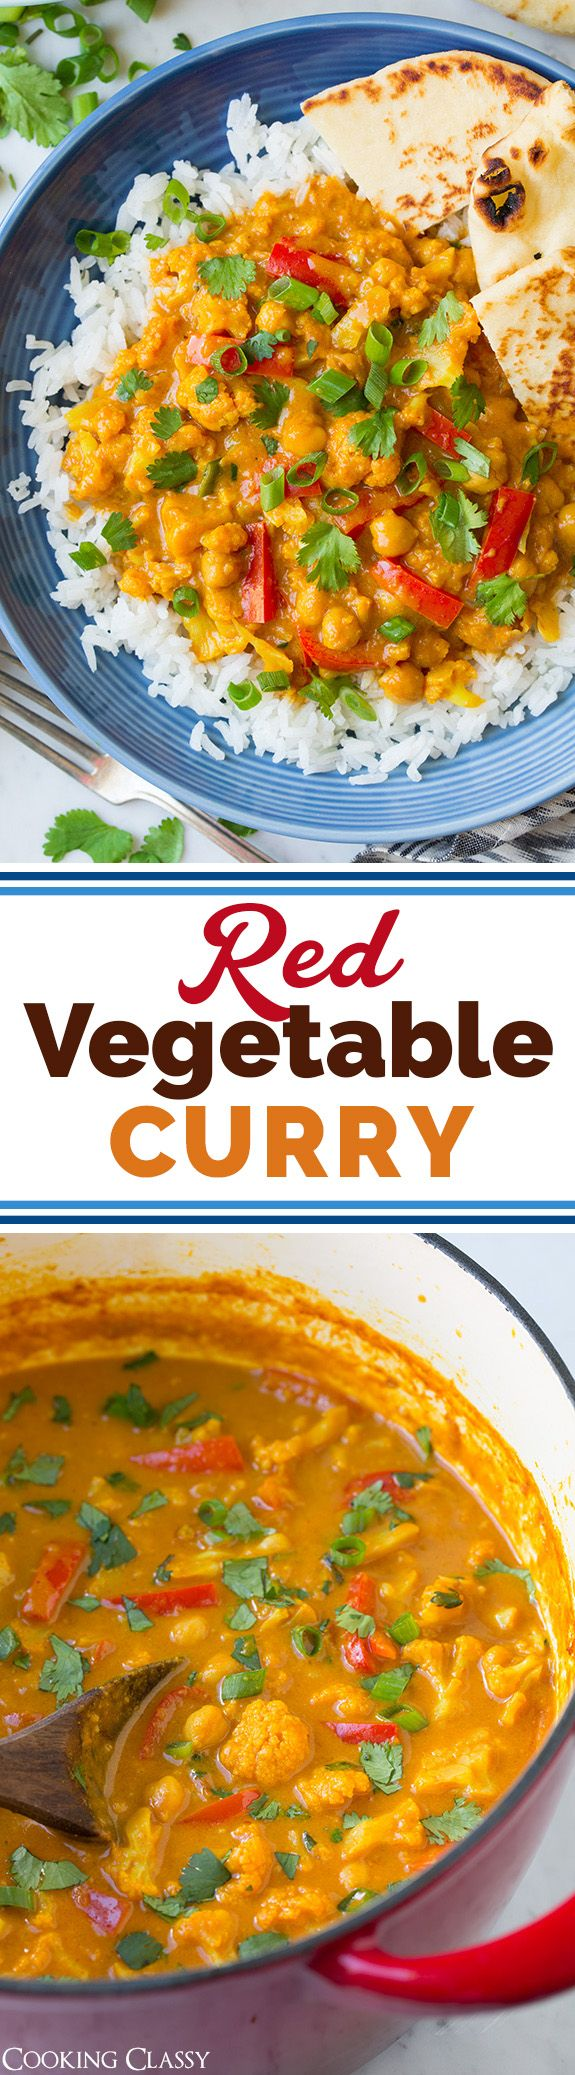 Red Vegetable Curry - a new favorite vegetarian dinner! You won't even miss the meat!